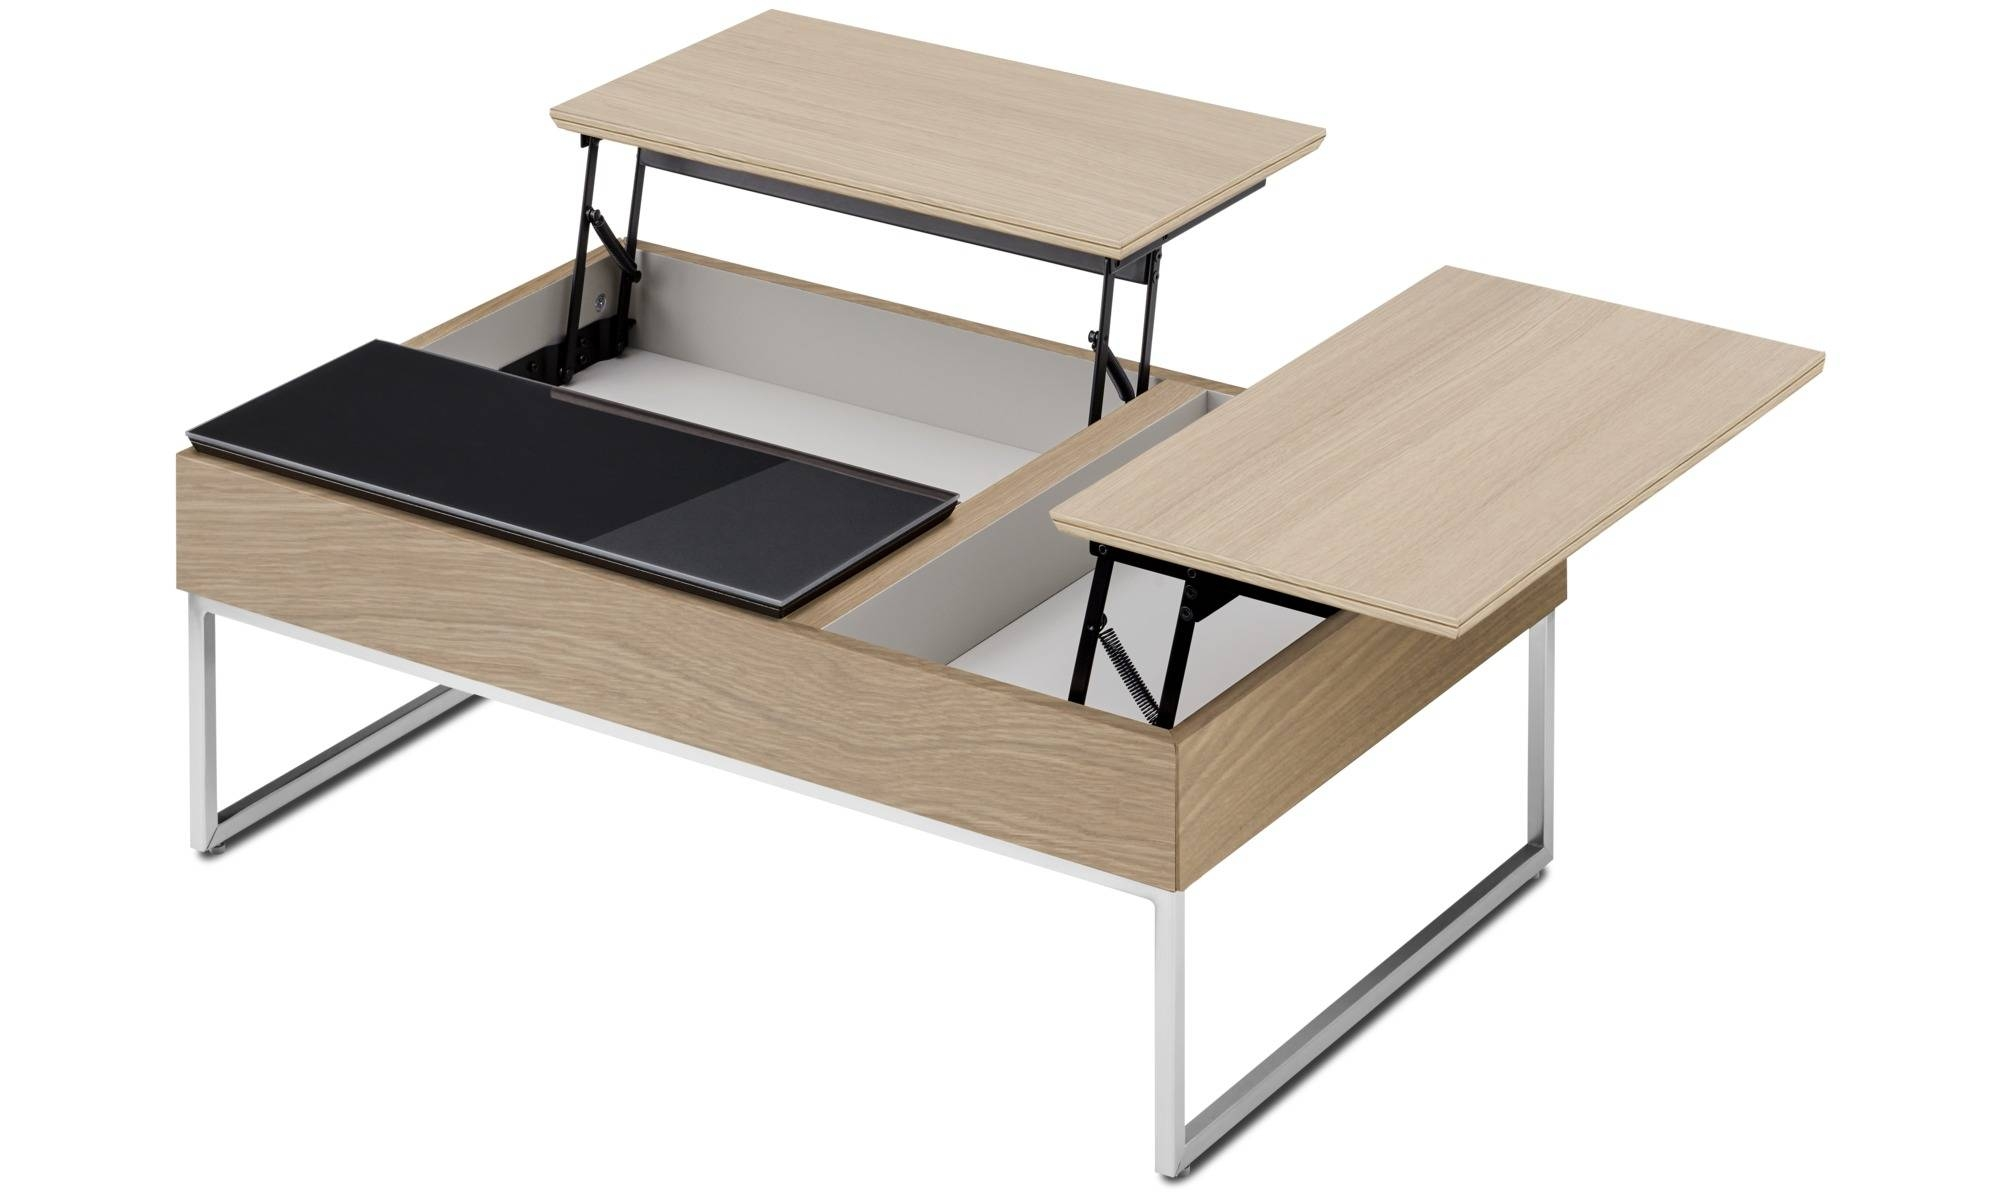 Coffee Tables - Chiva Functional Coffee Table With Storage - Boconcept pertaining to Desk Coffee Tables (Image 6 of 30)